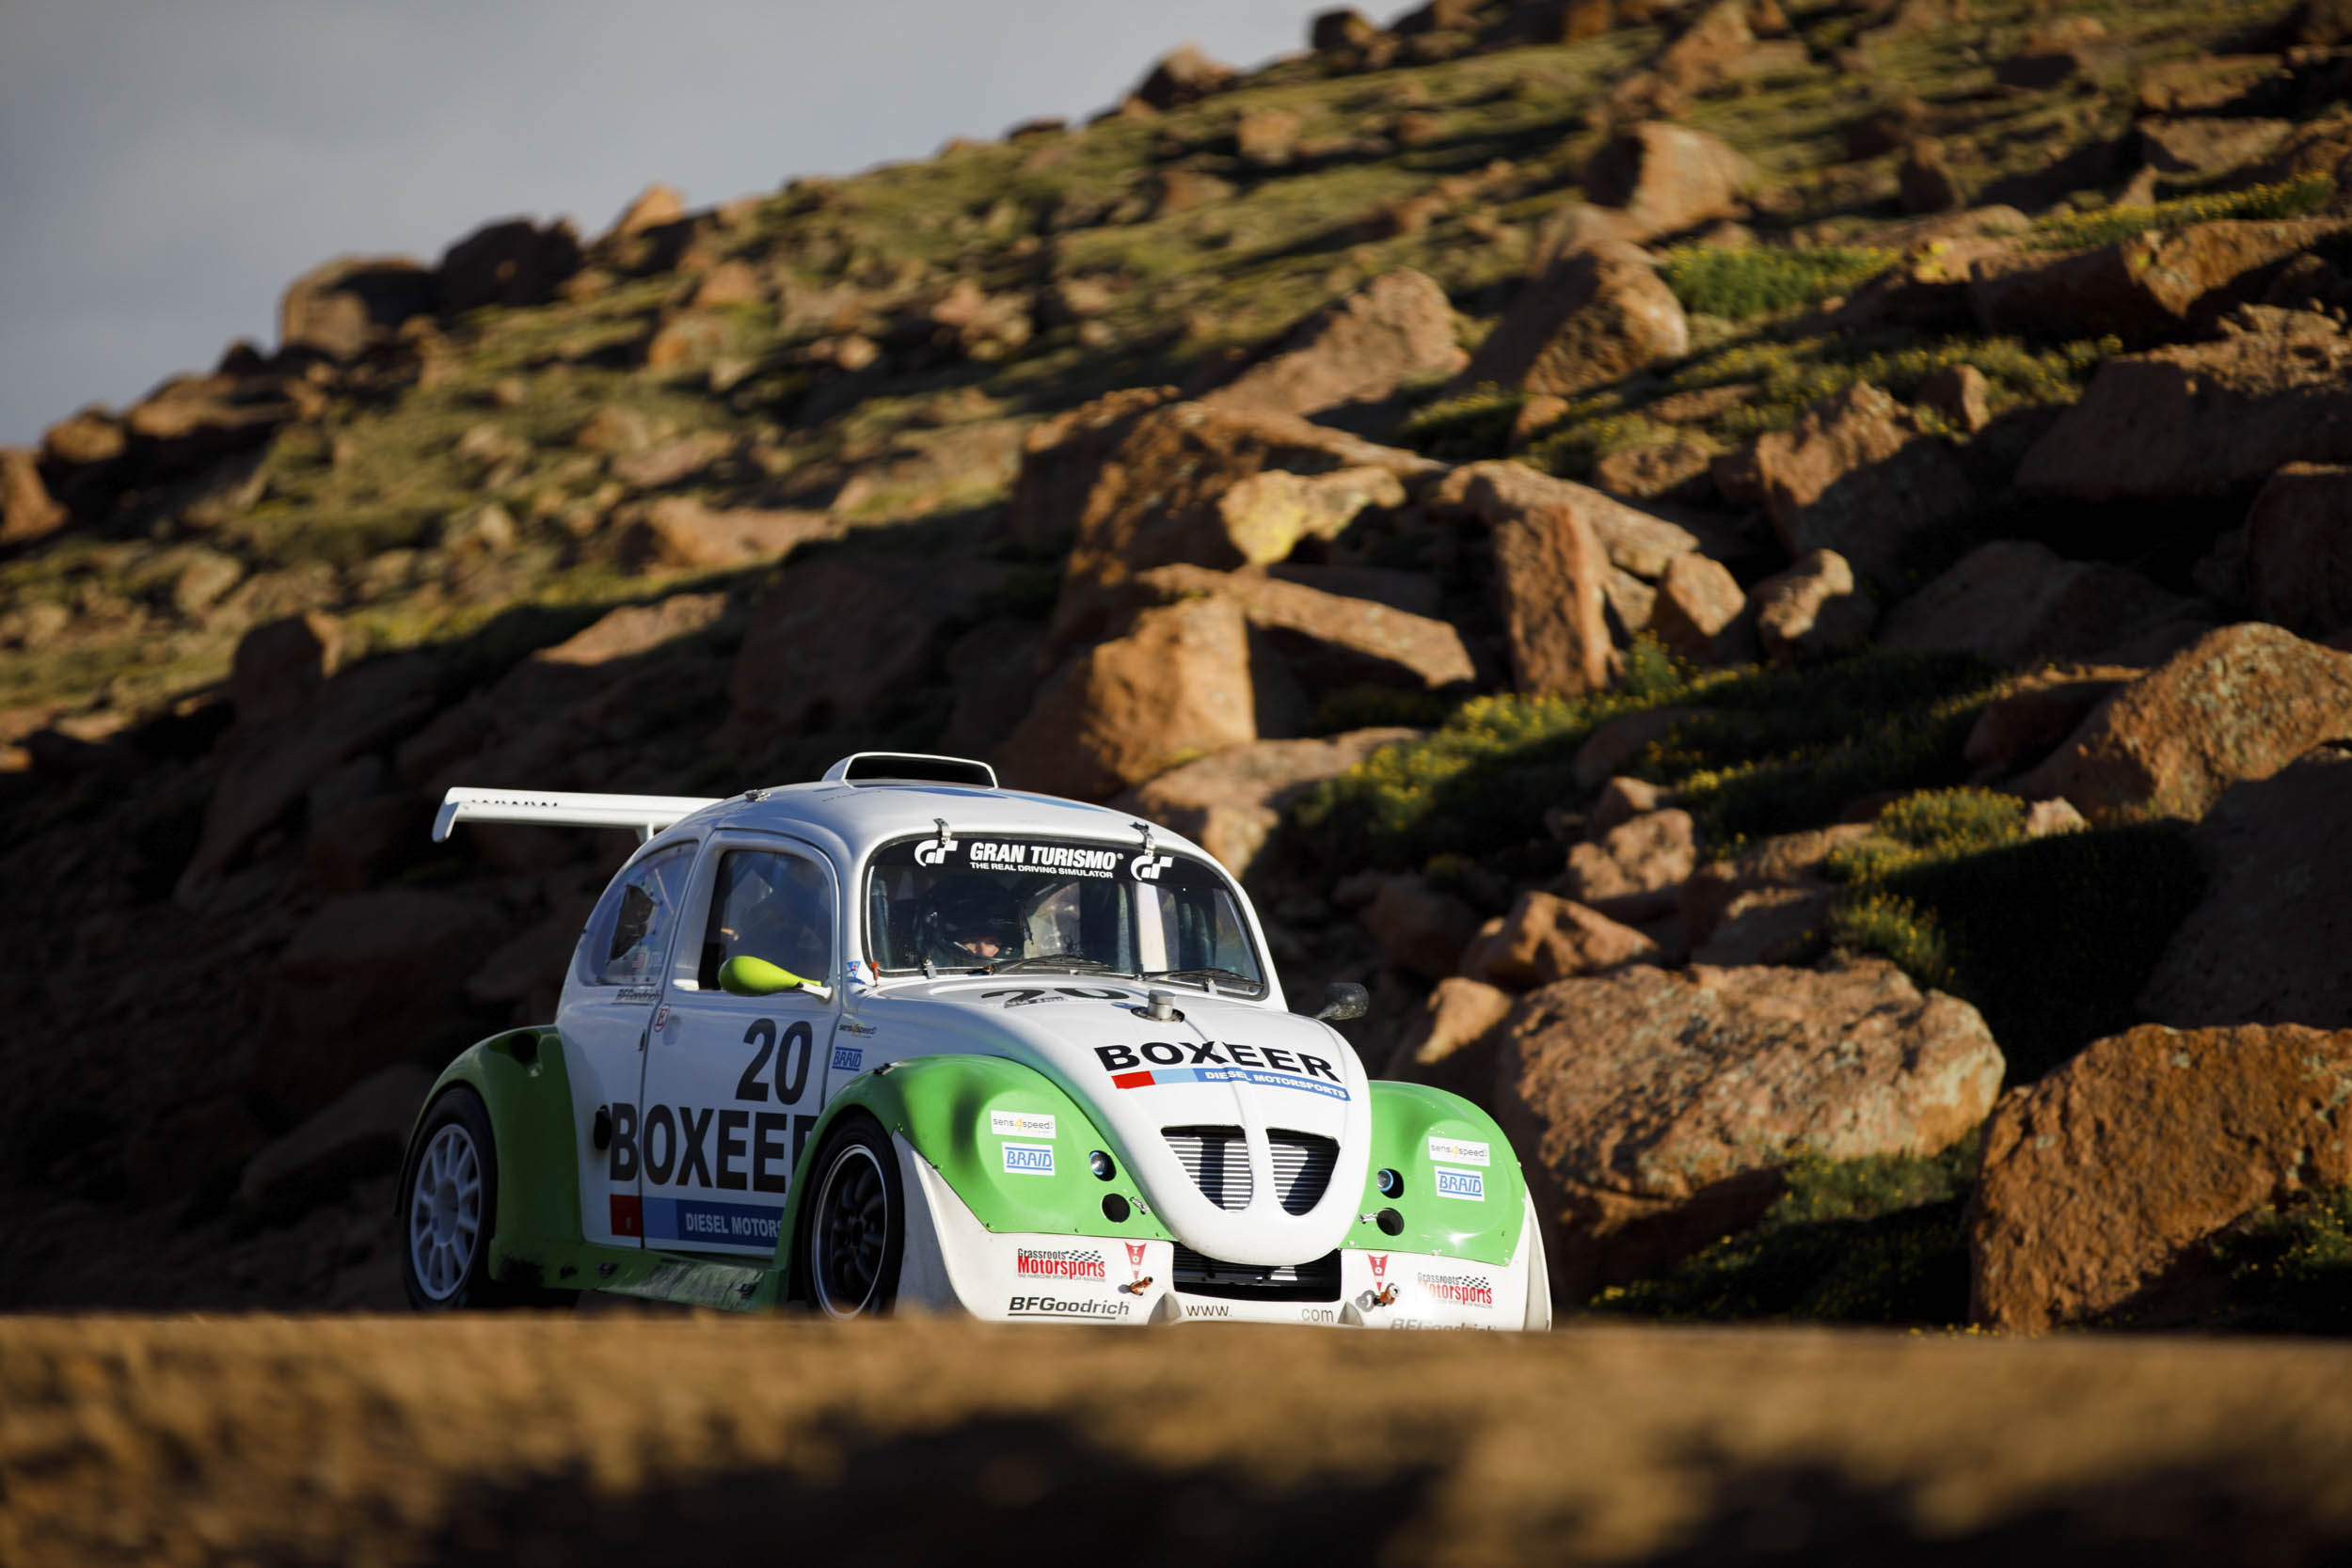 Beetle driving up a mountain